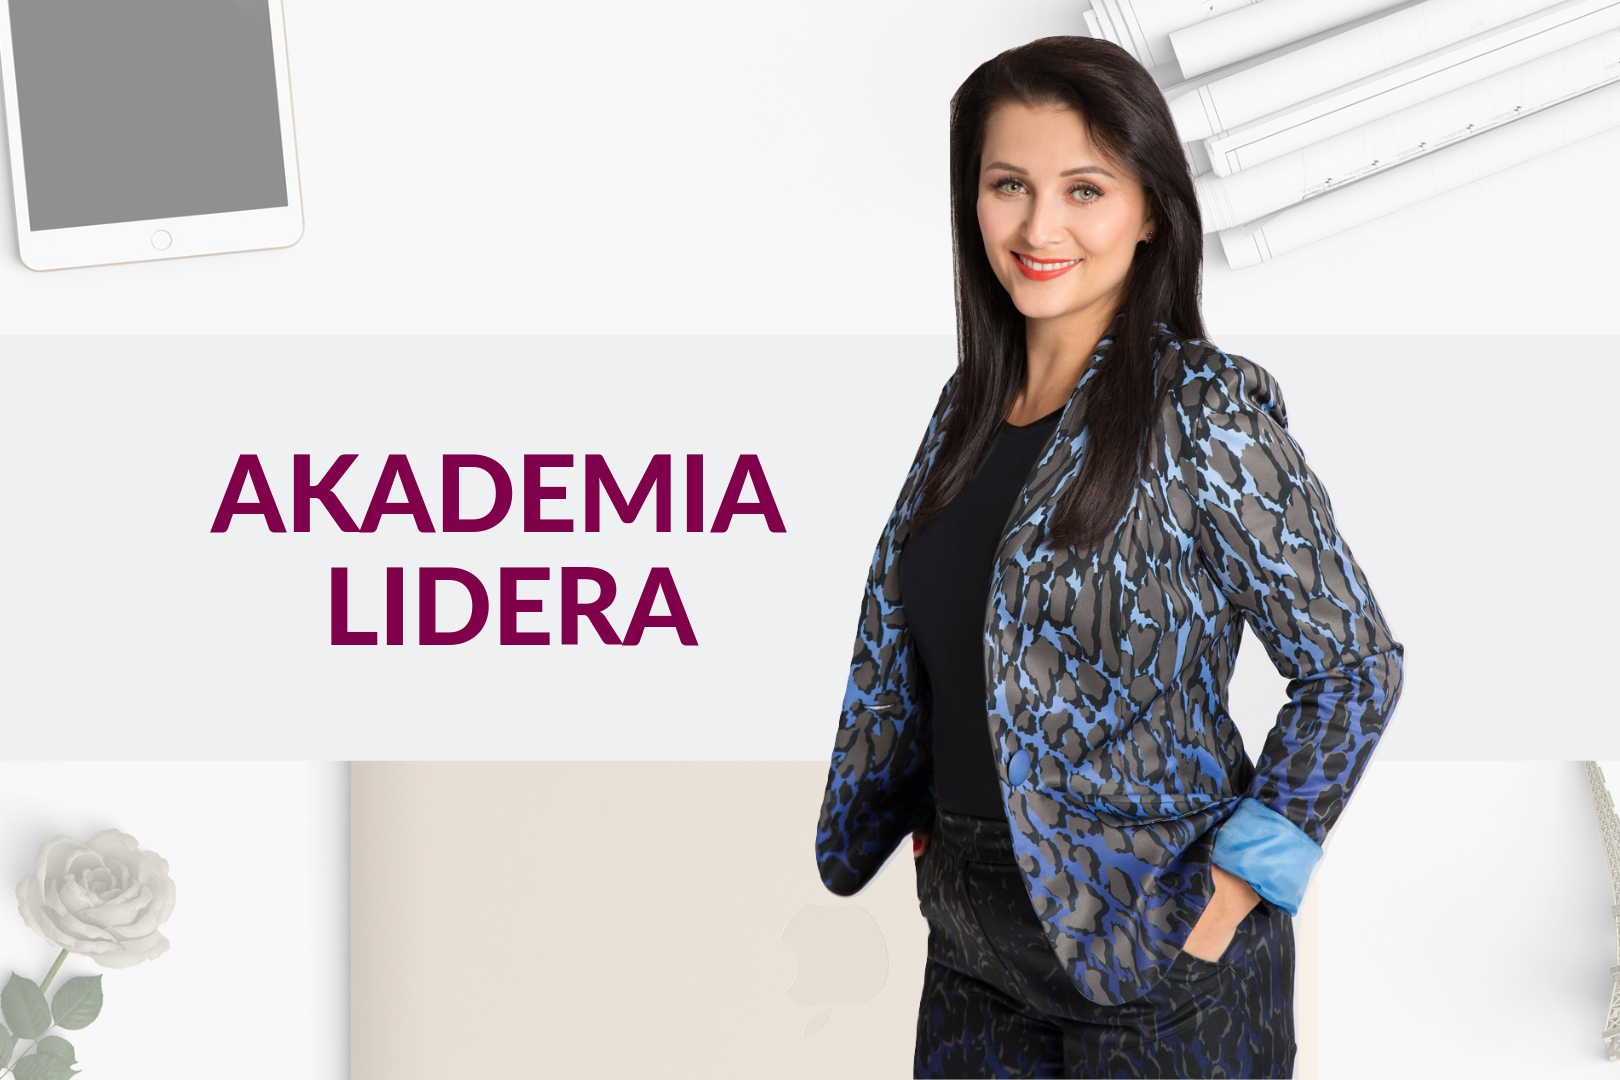 akademia-lidera-kurs-mini-pop